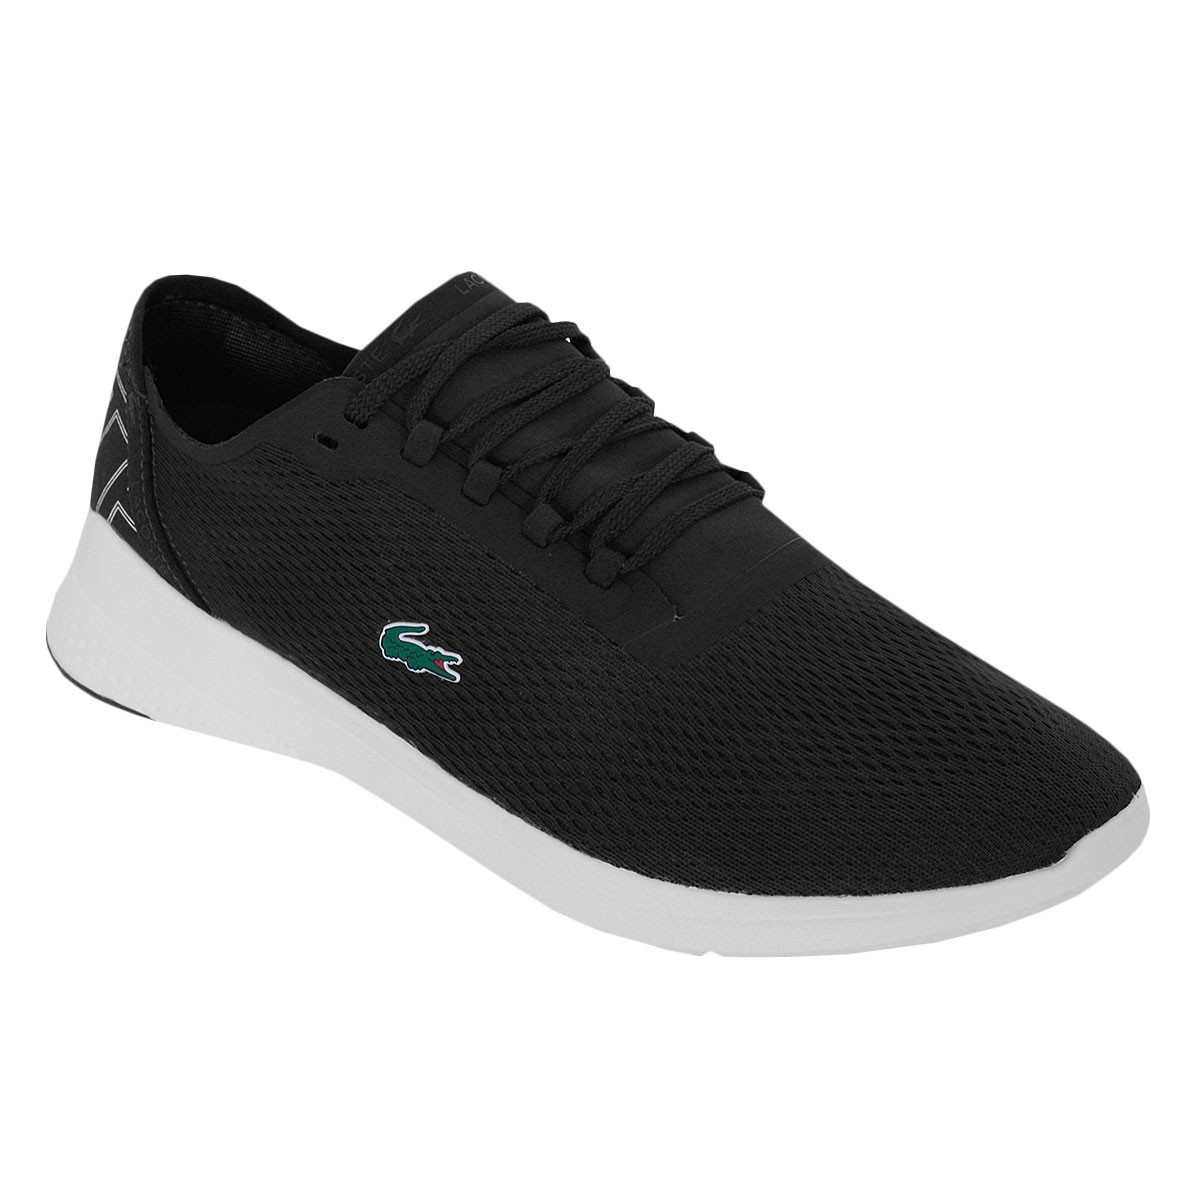 new style 90c3b 175ce Lacoste Mens 2019 LT Fit 119 1 SMA Trainers